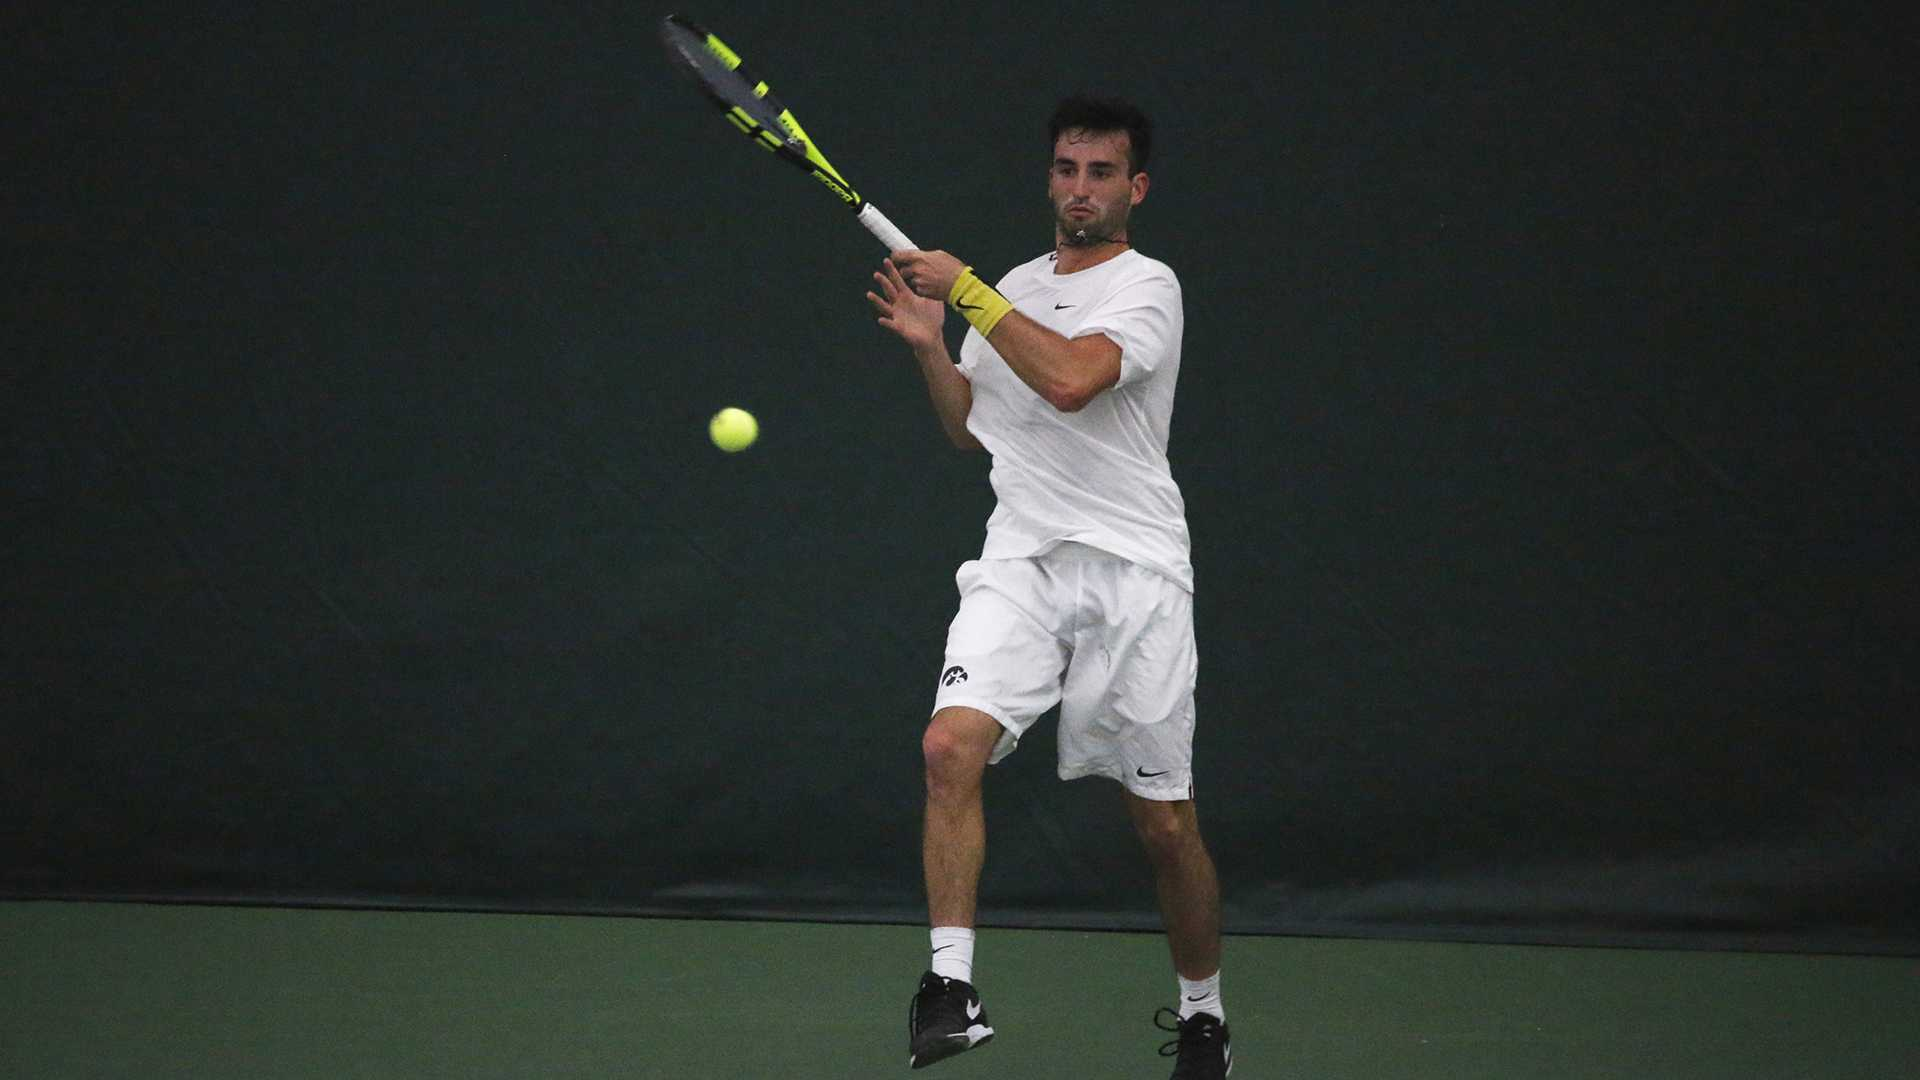 Iowa's Josh Silverstein returns the ball during the Iowa/IUPUI tennis match on Feb. 11, 2018. The Hawkeyes defeated the Jaguars 7-0. (Katina Zentz/The Daily Iowan)